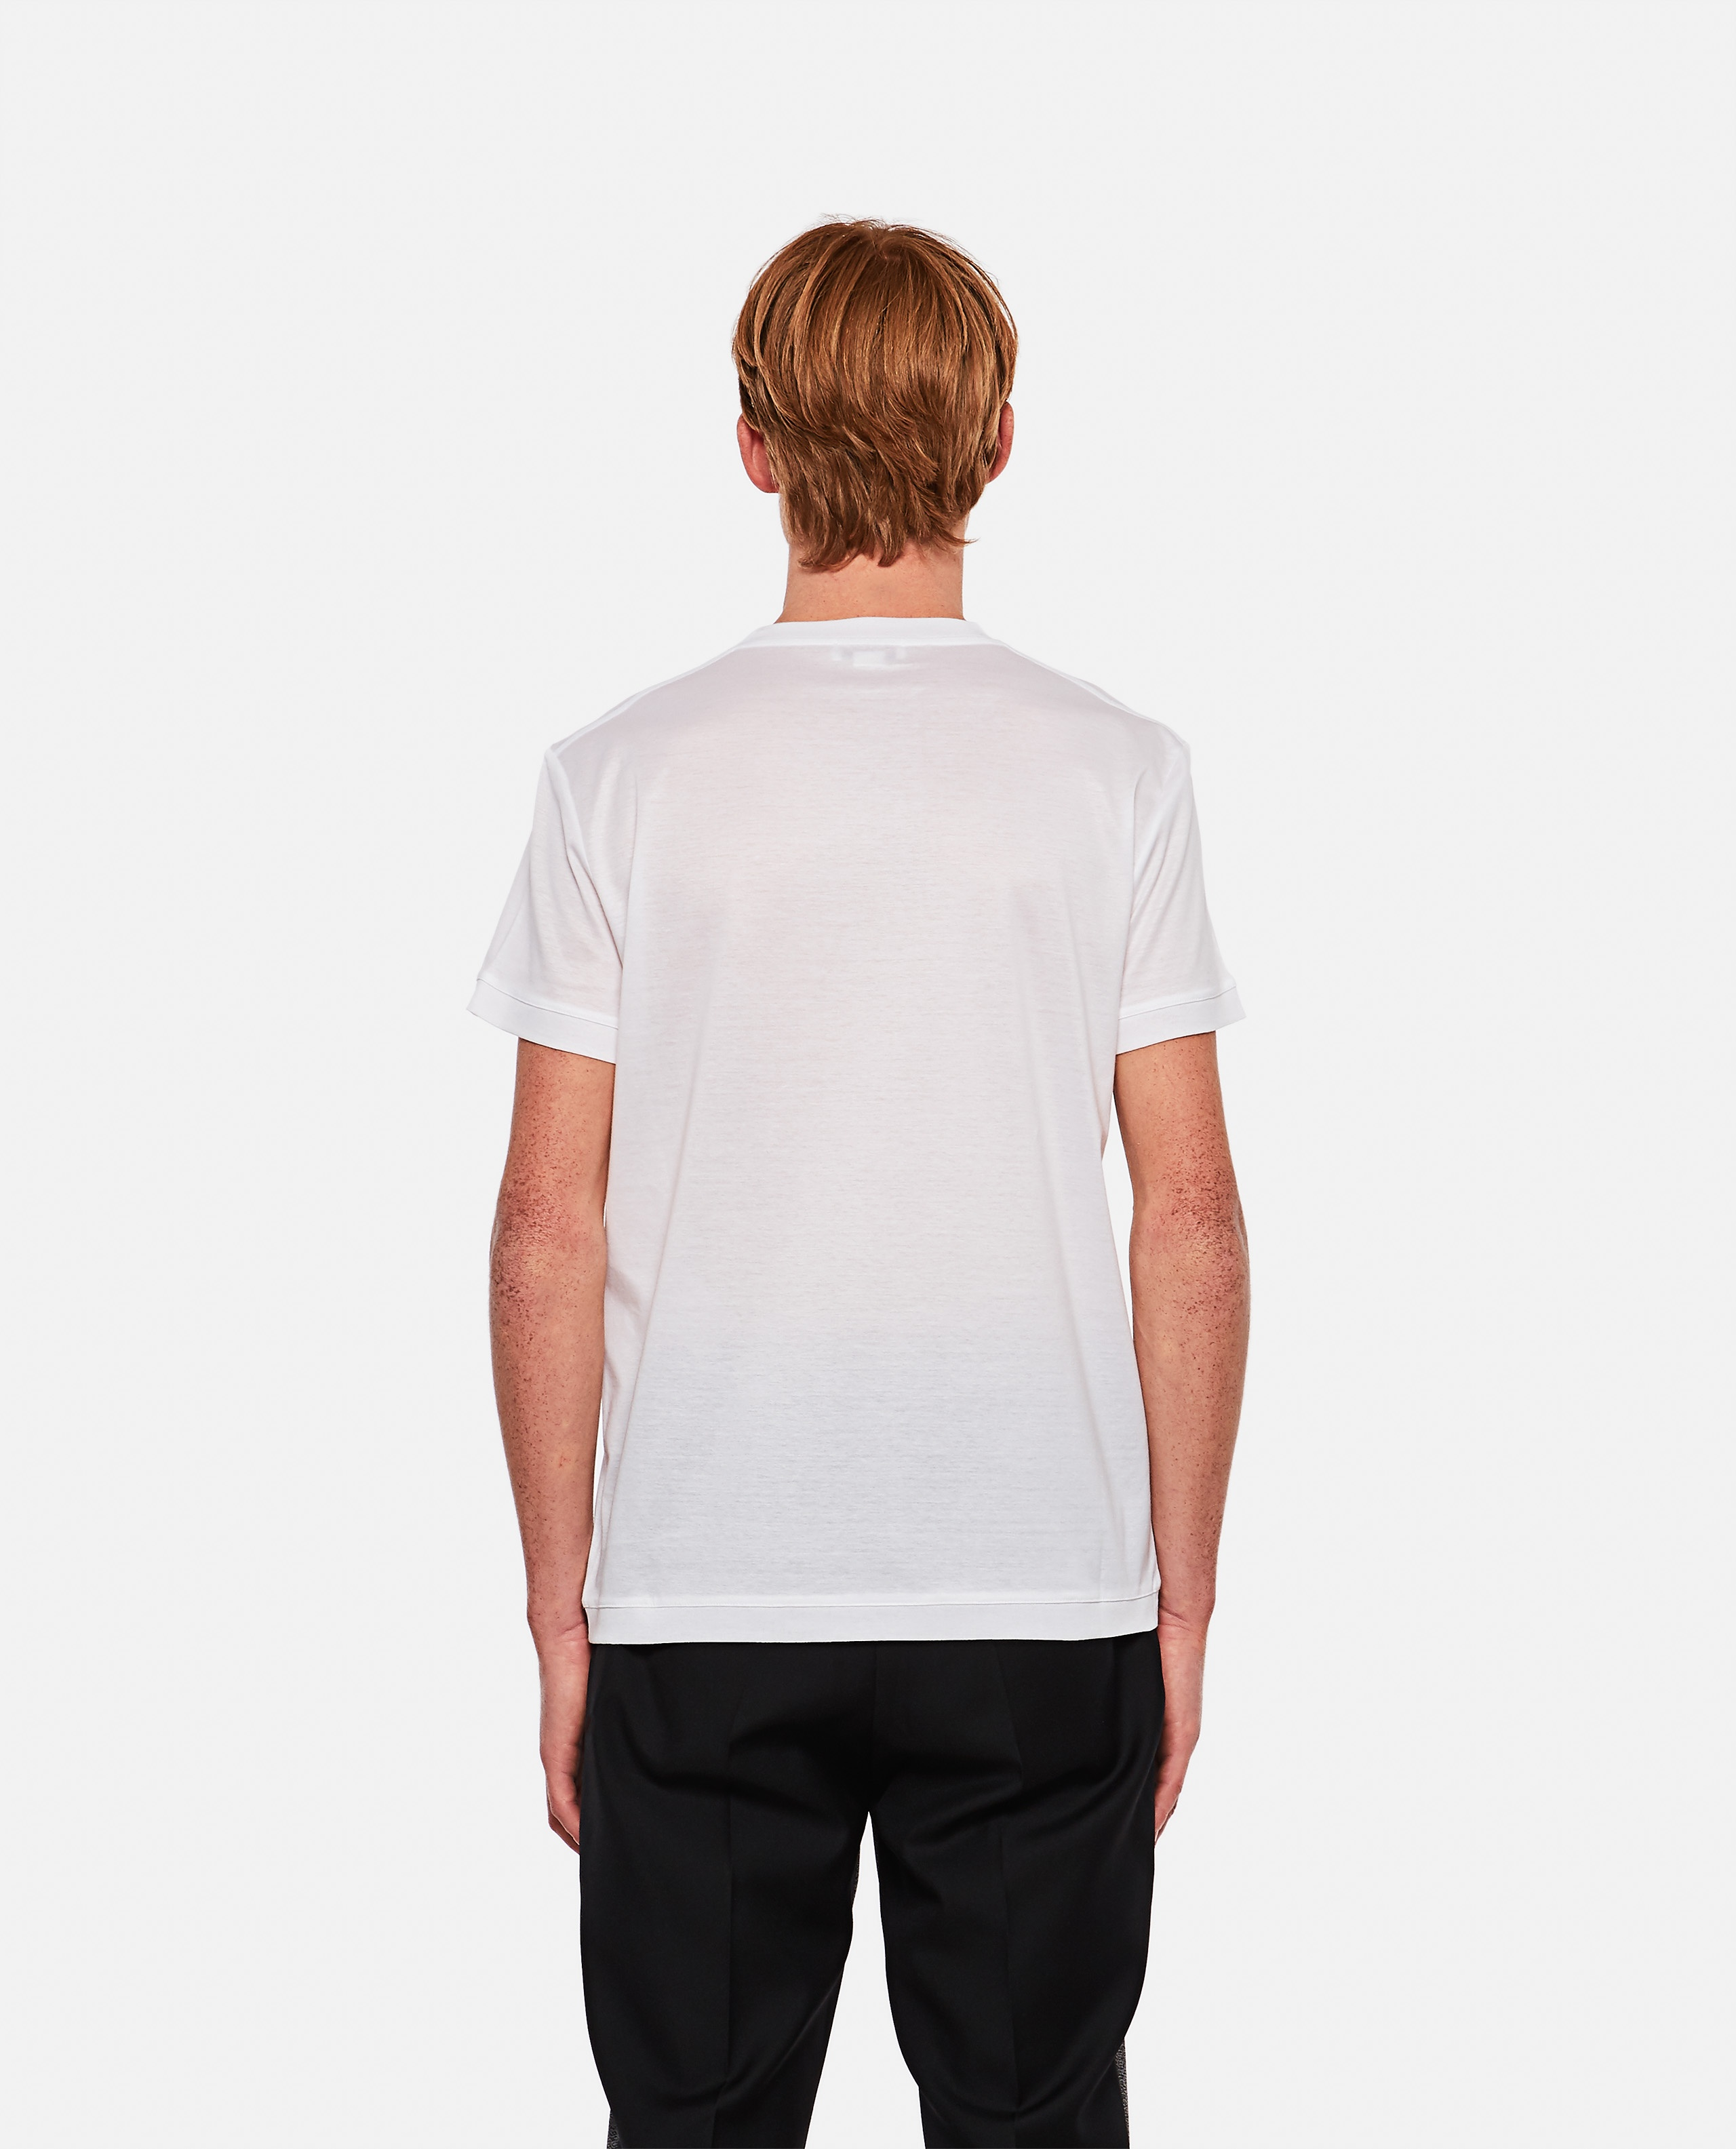 T-shirt with embroidered logo Men Alexander McQueen 000291060042851 3